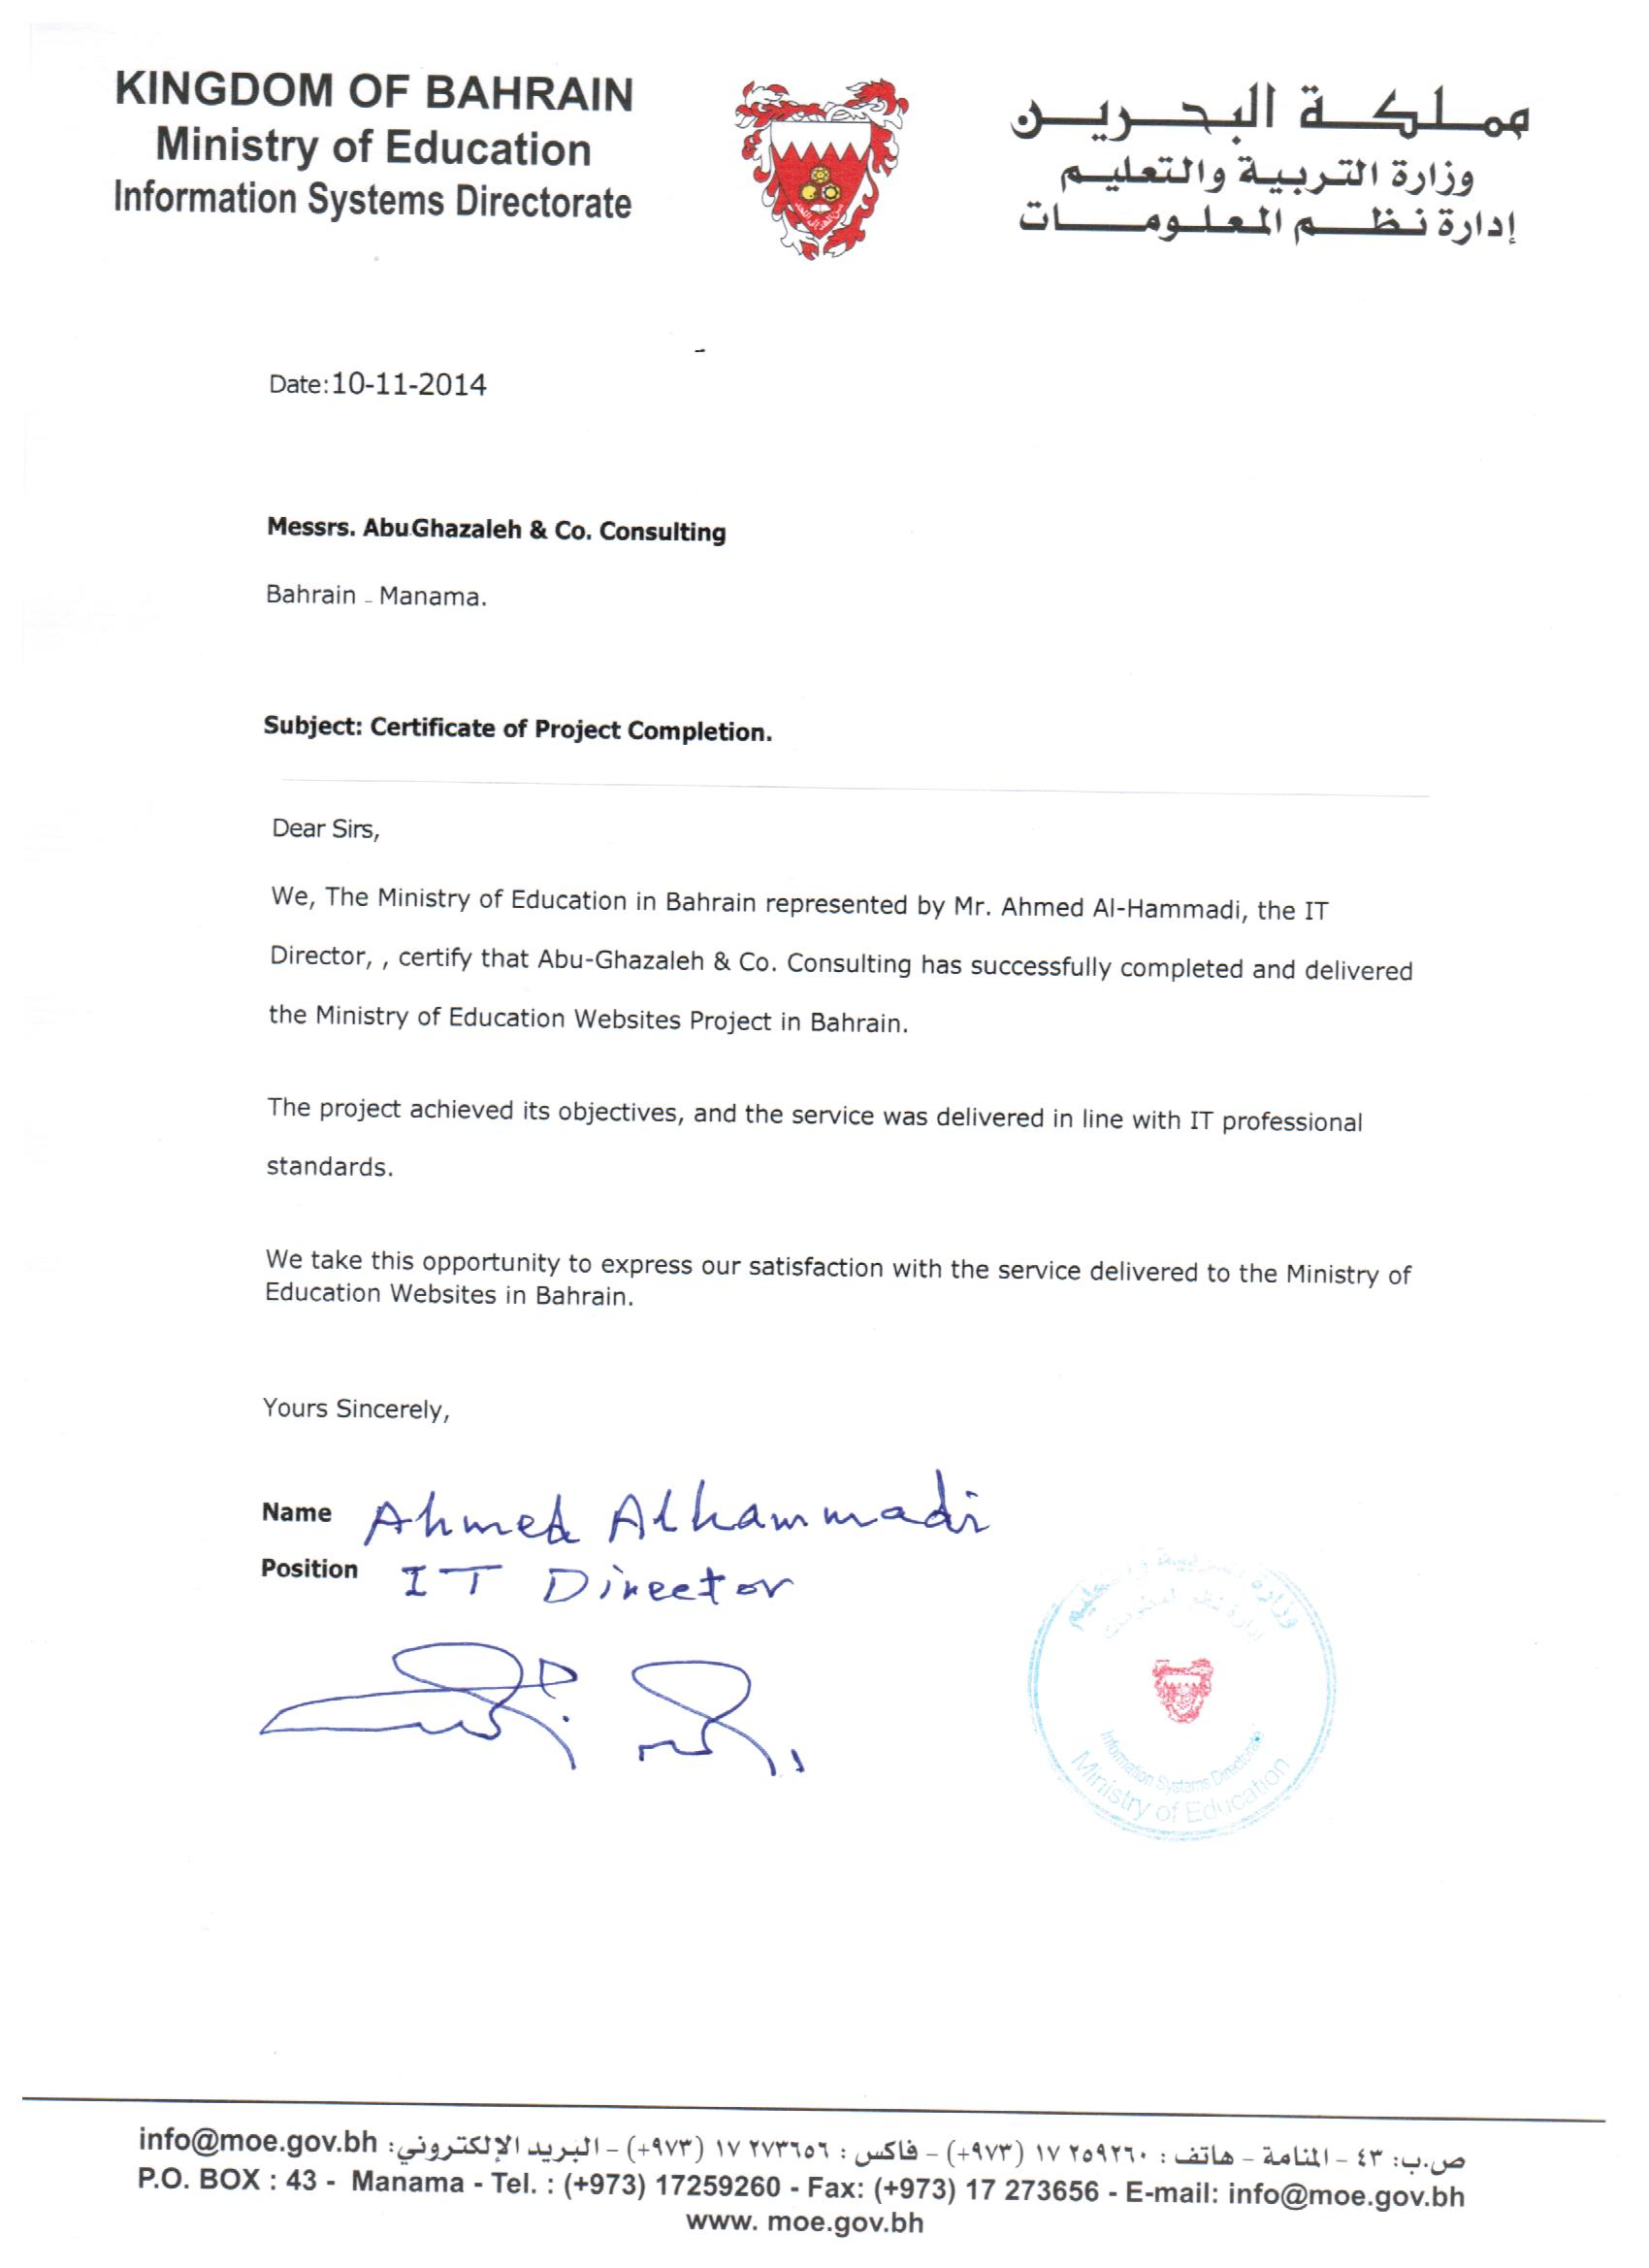 arab organization for quality assurance in education aroqa a thank you letter to mr ramez quneibi from the ministry of education kingdom of